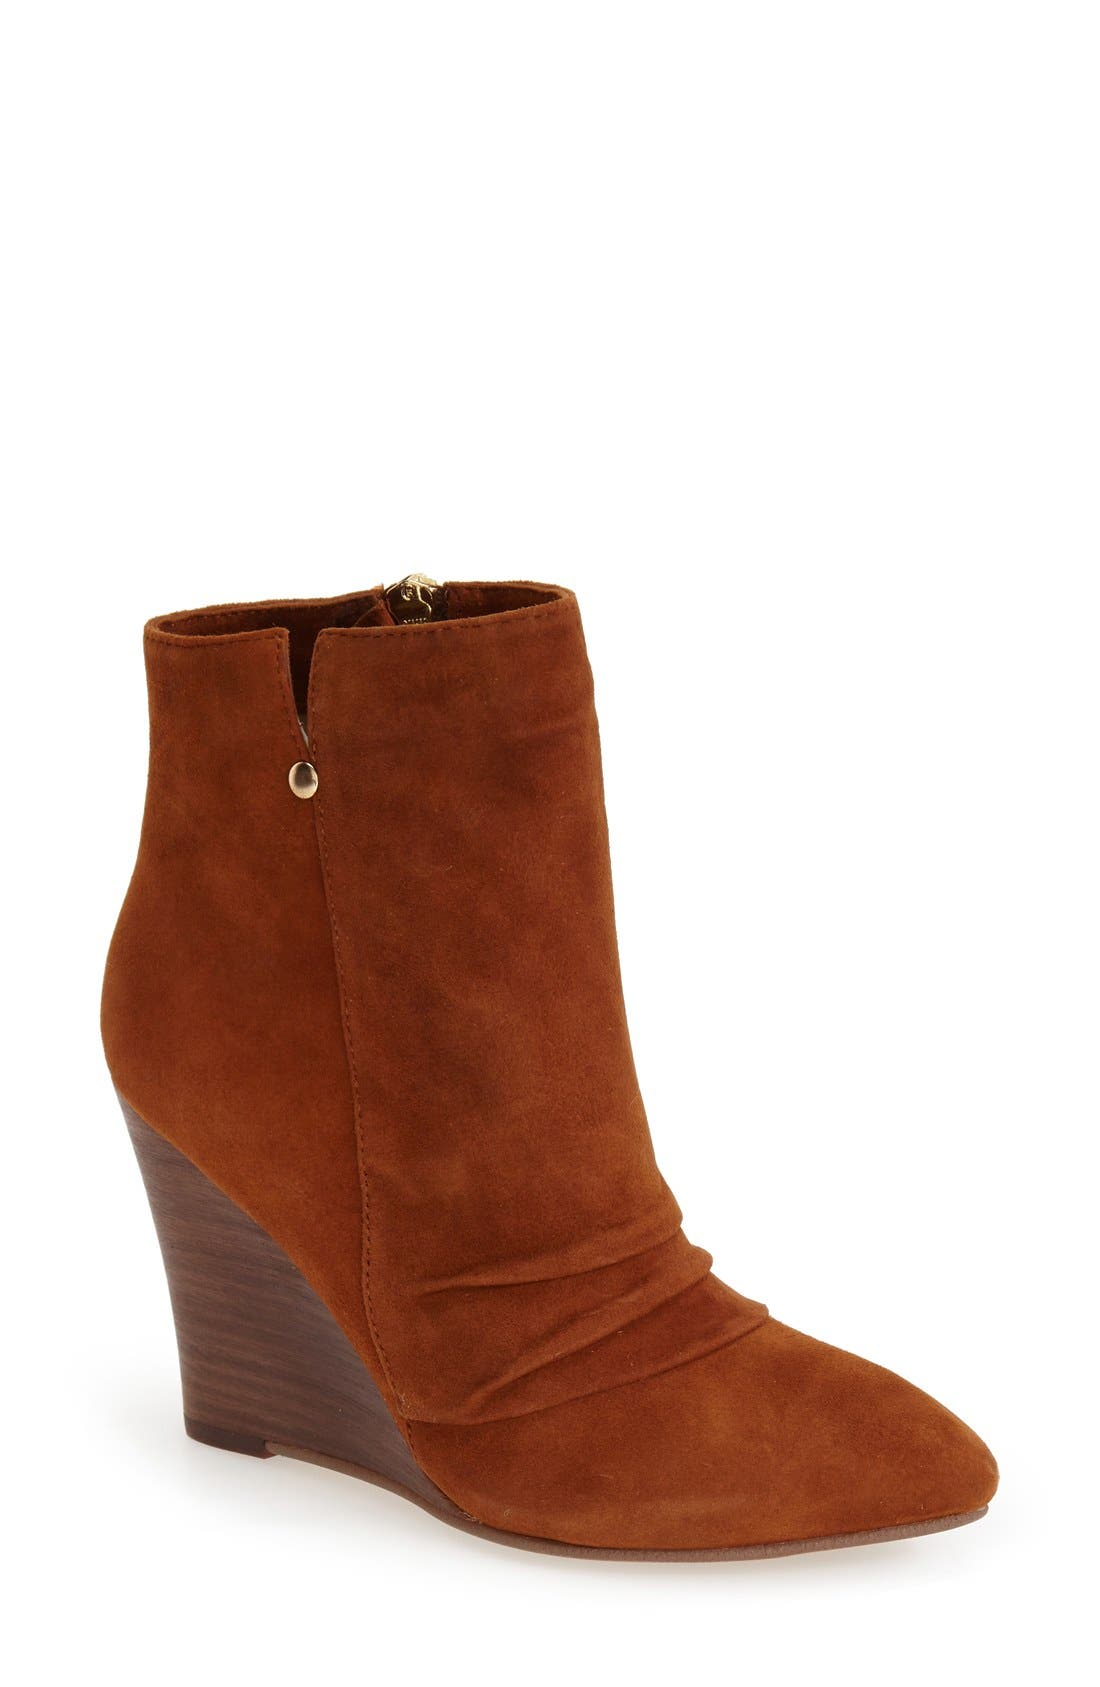 'Candyce' Wedge Bootie,                         Main,                         color, Ginger Suede